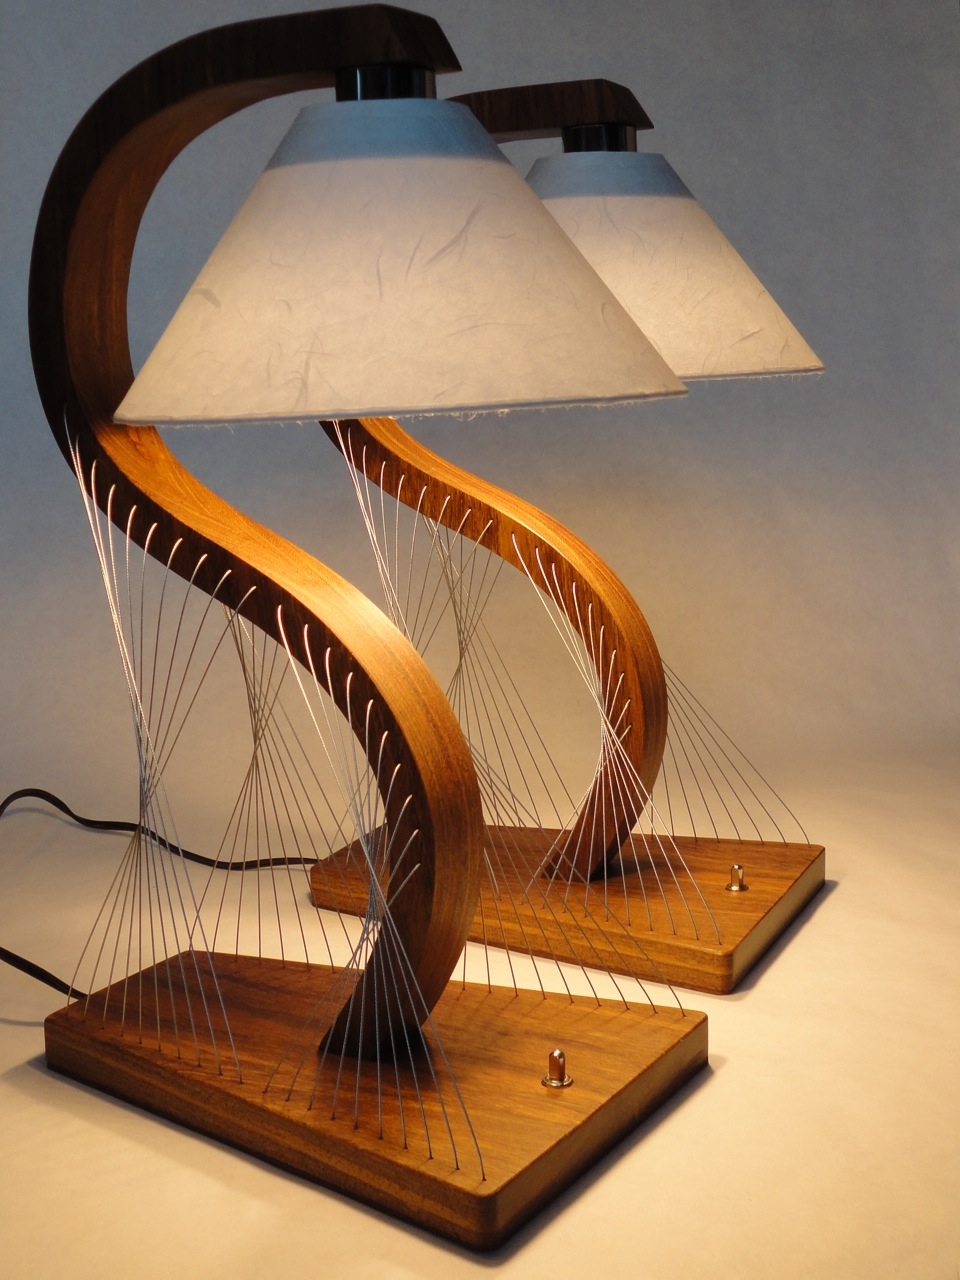 Both Bedside Lamps